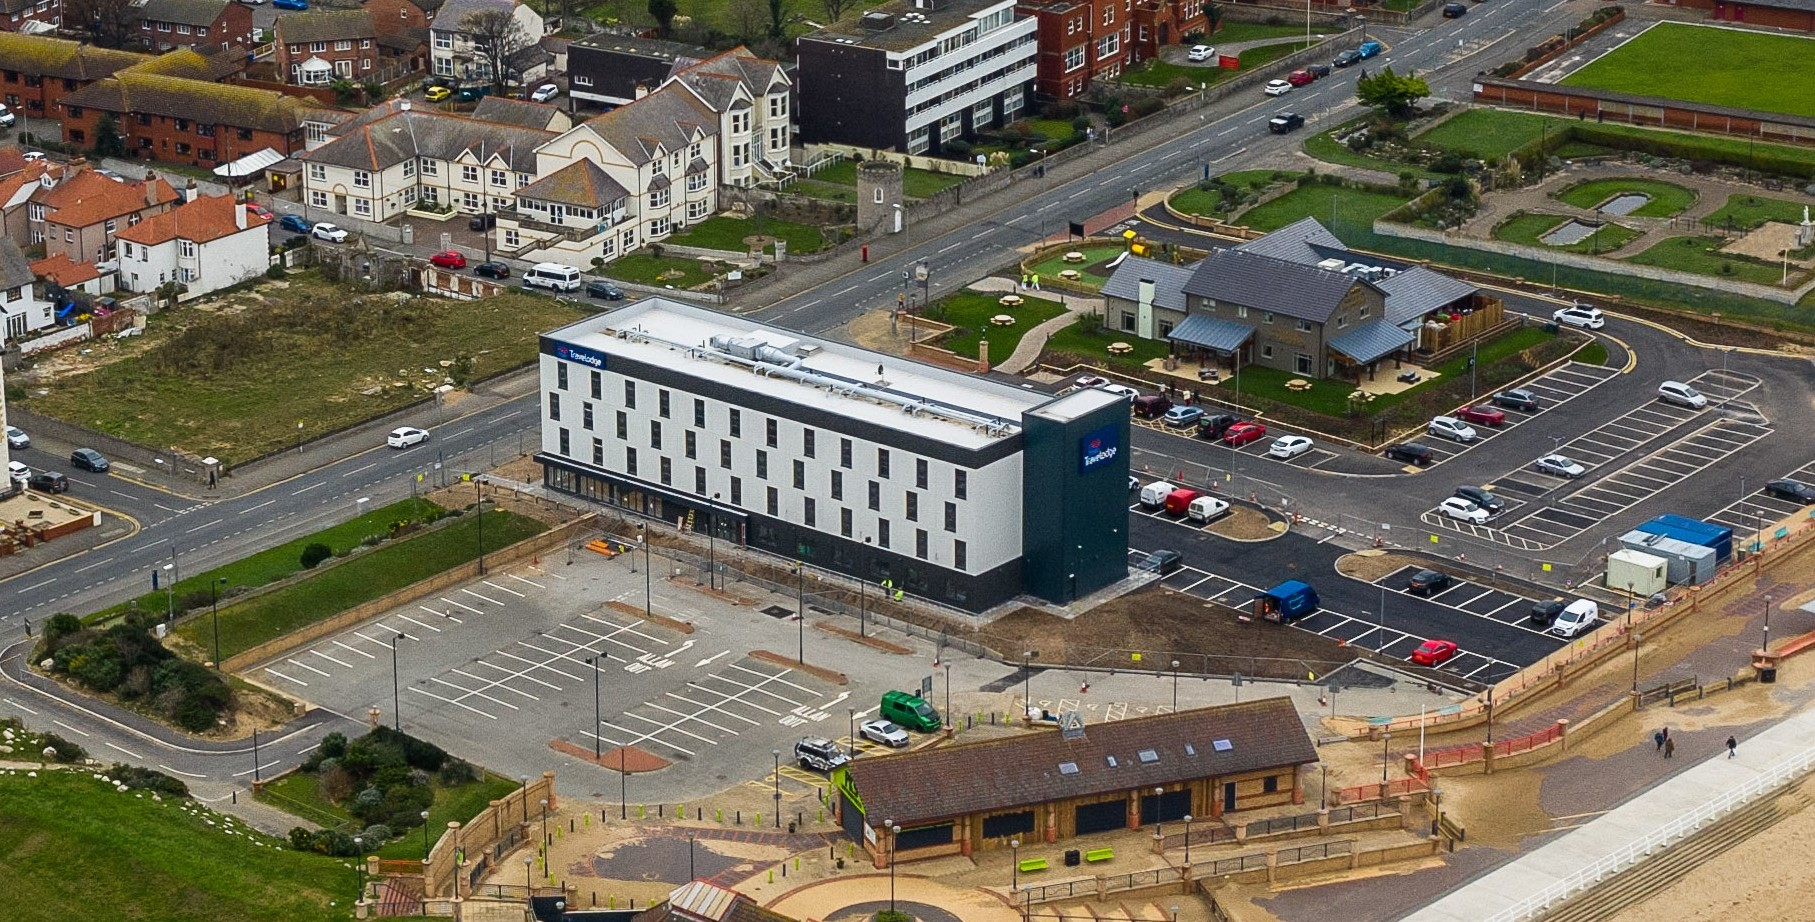 The Travelodge boasts 73-bedrooms